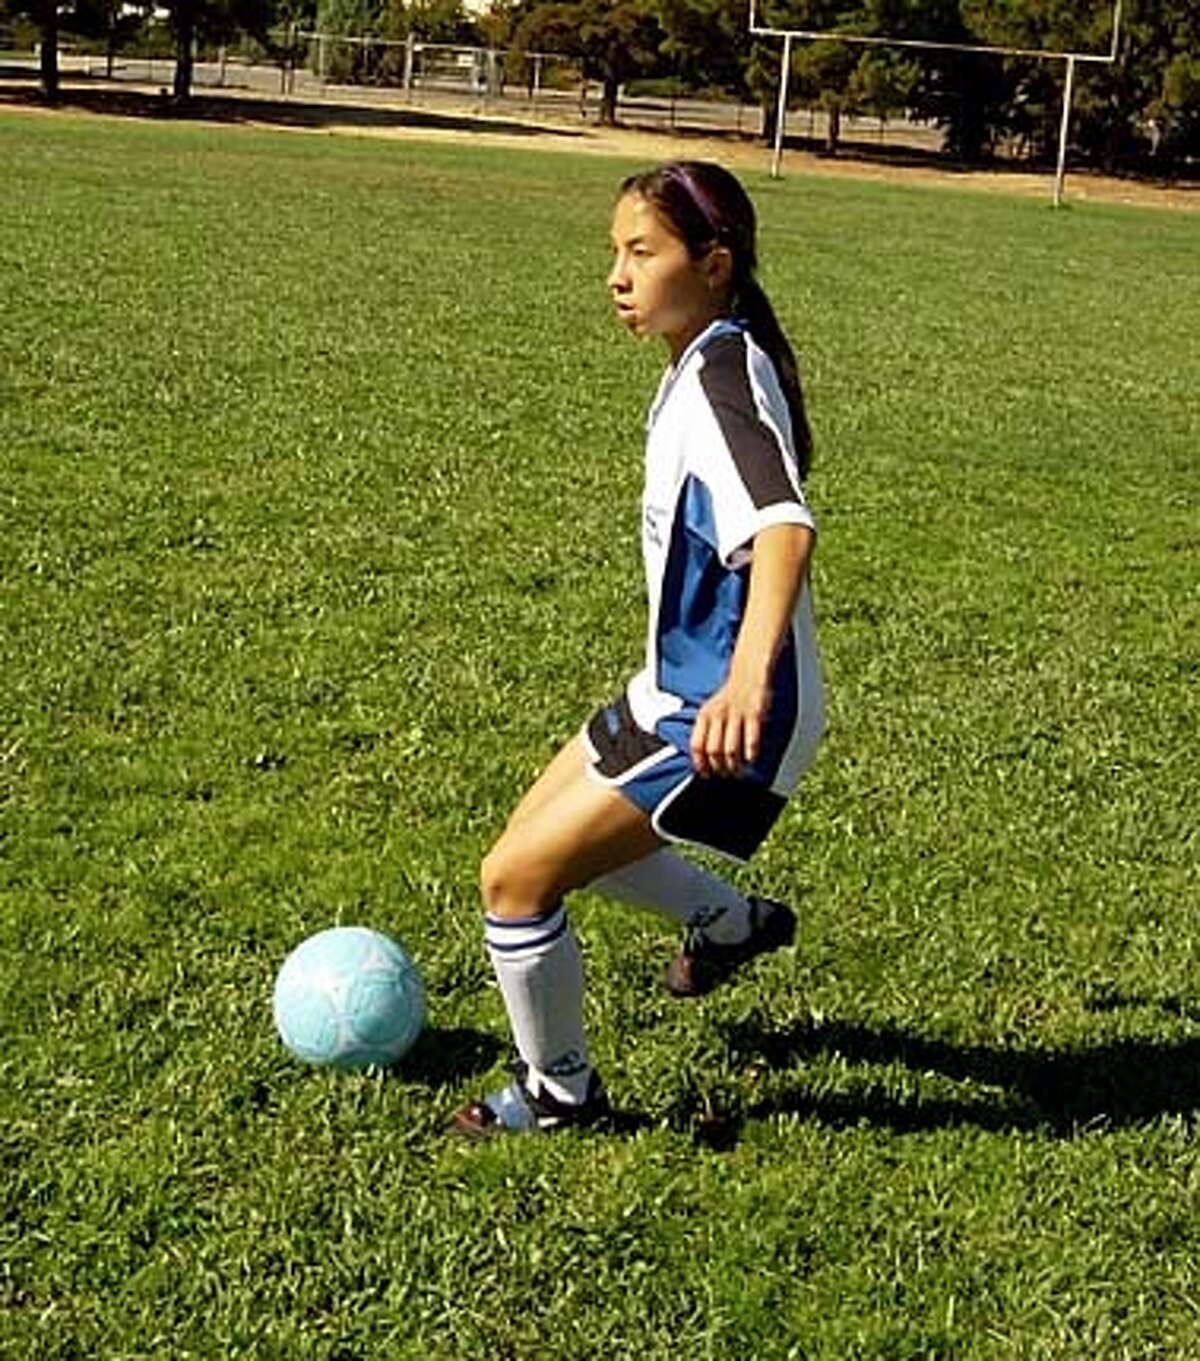 Sonja Partington, soccer player with pace maker. Goes with Nevius column in East Bay Life for 10/1.